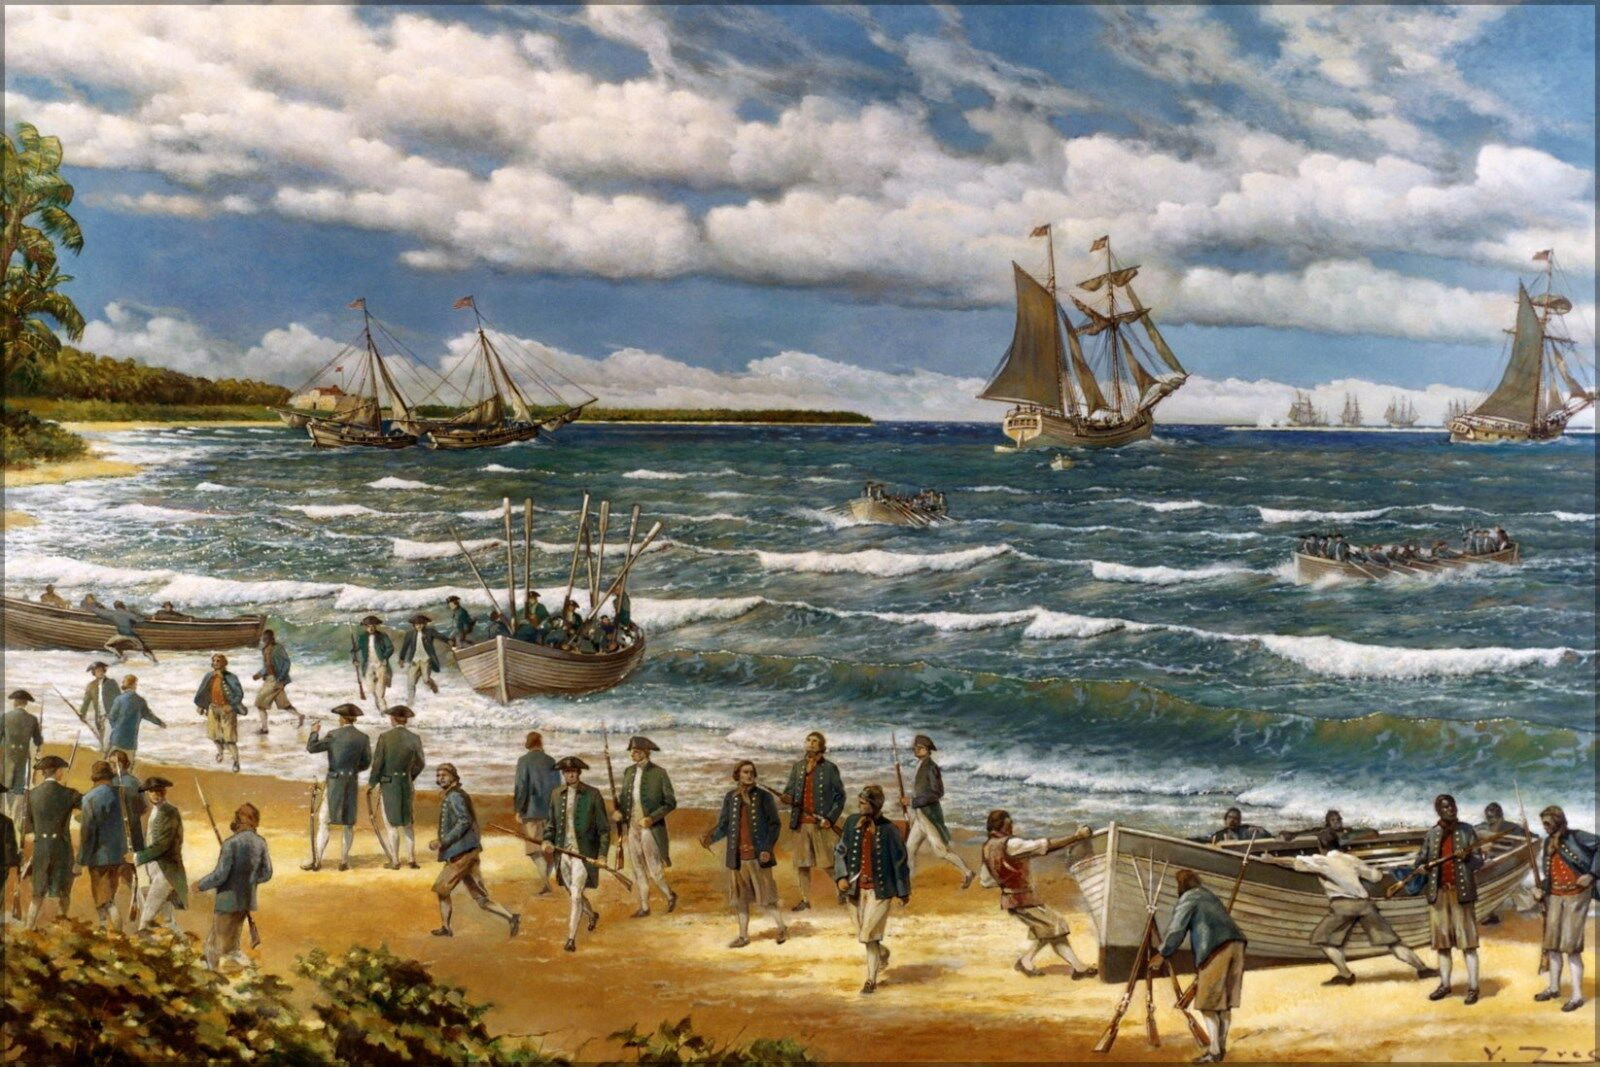 Poster, Many Größes; United States Marines Landing In Bahamas, On 3 March 1776